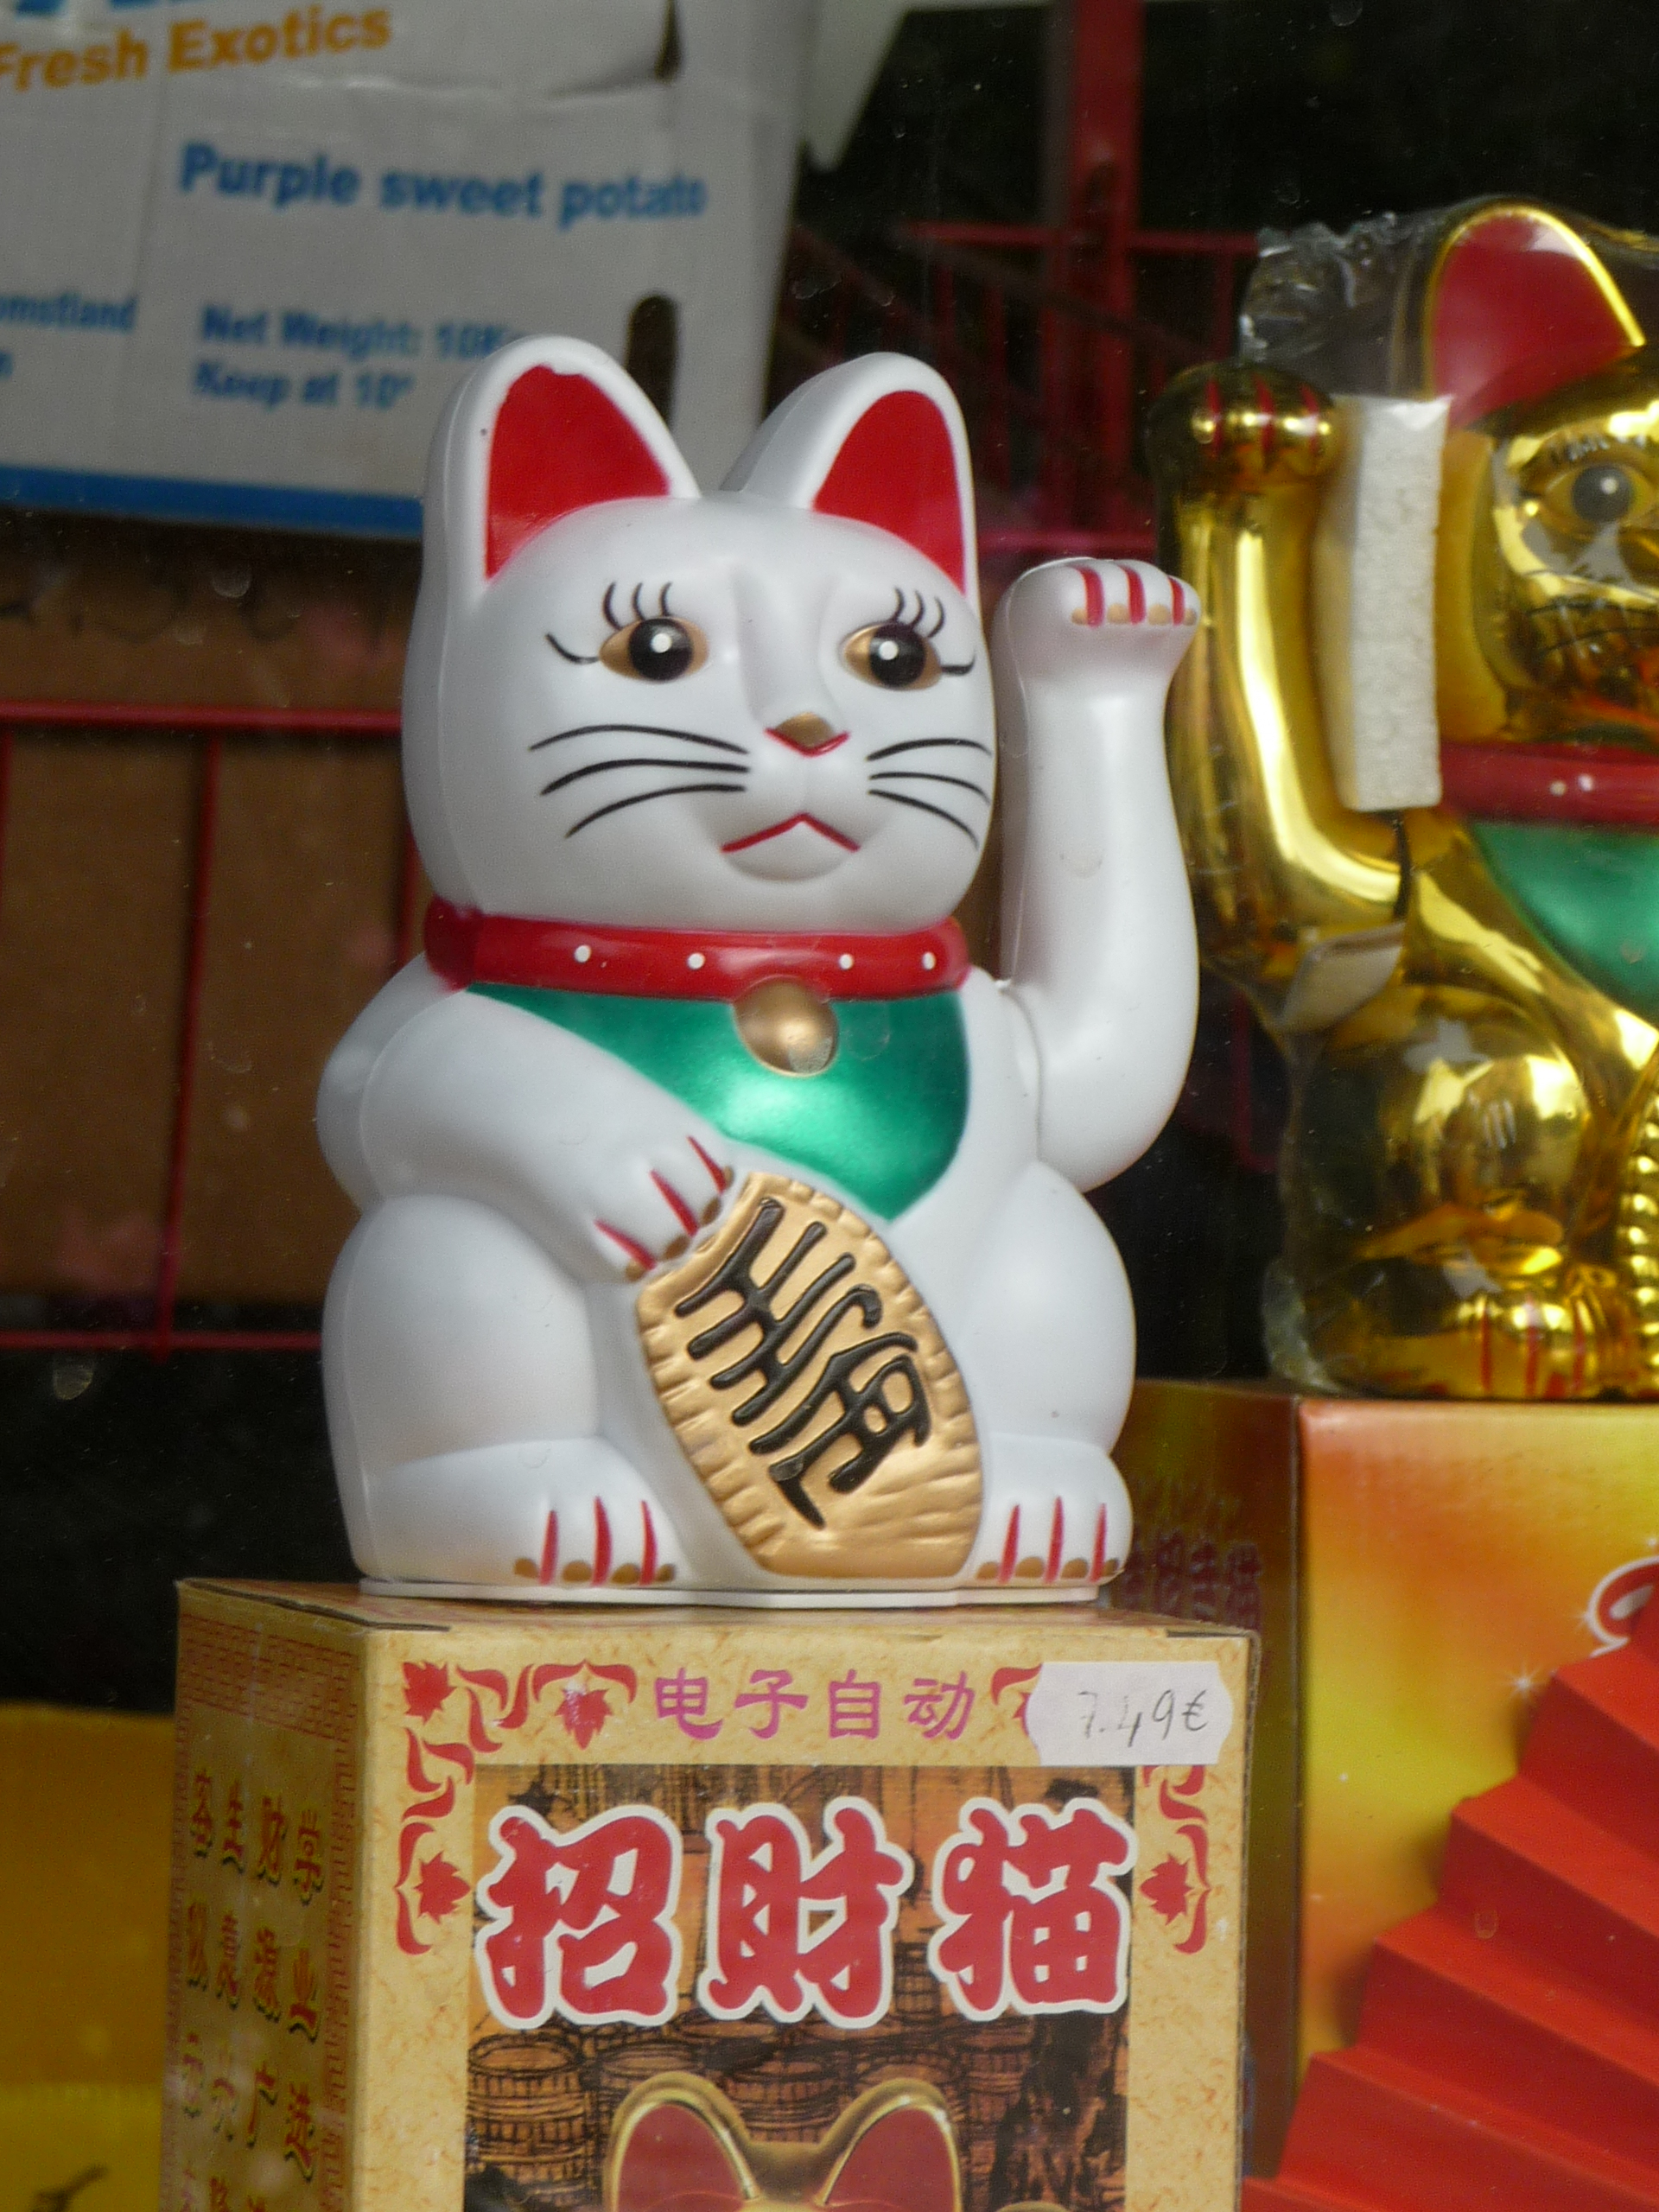 maneki neko cat figure statue doll art design asian japanese culture decor cute